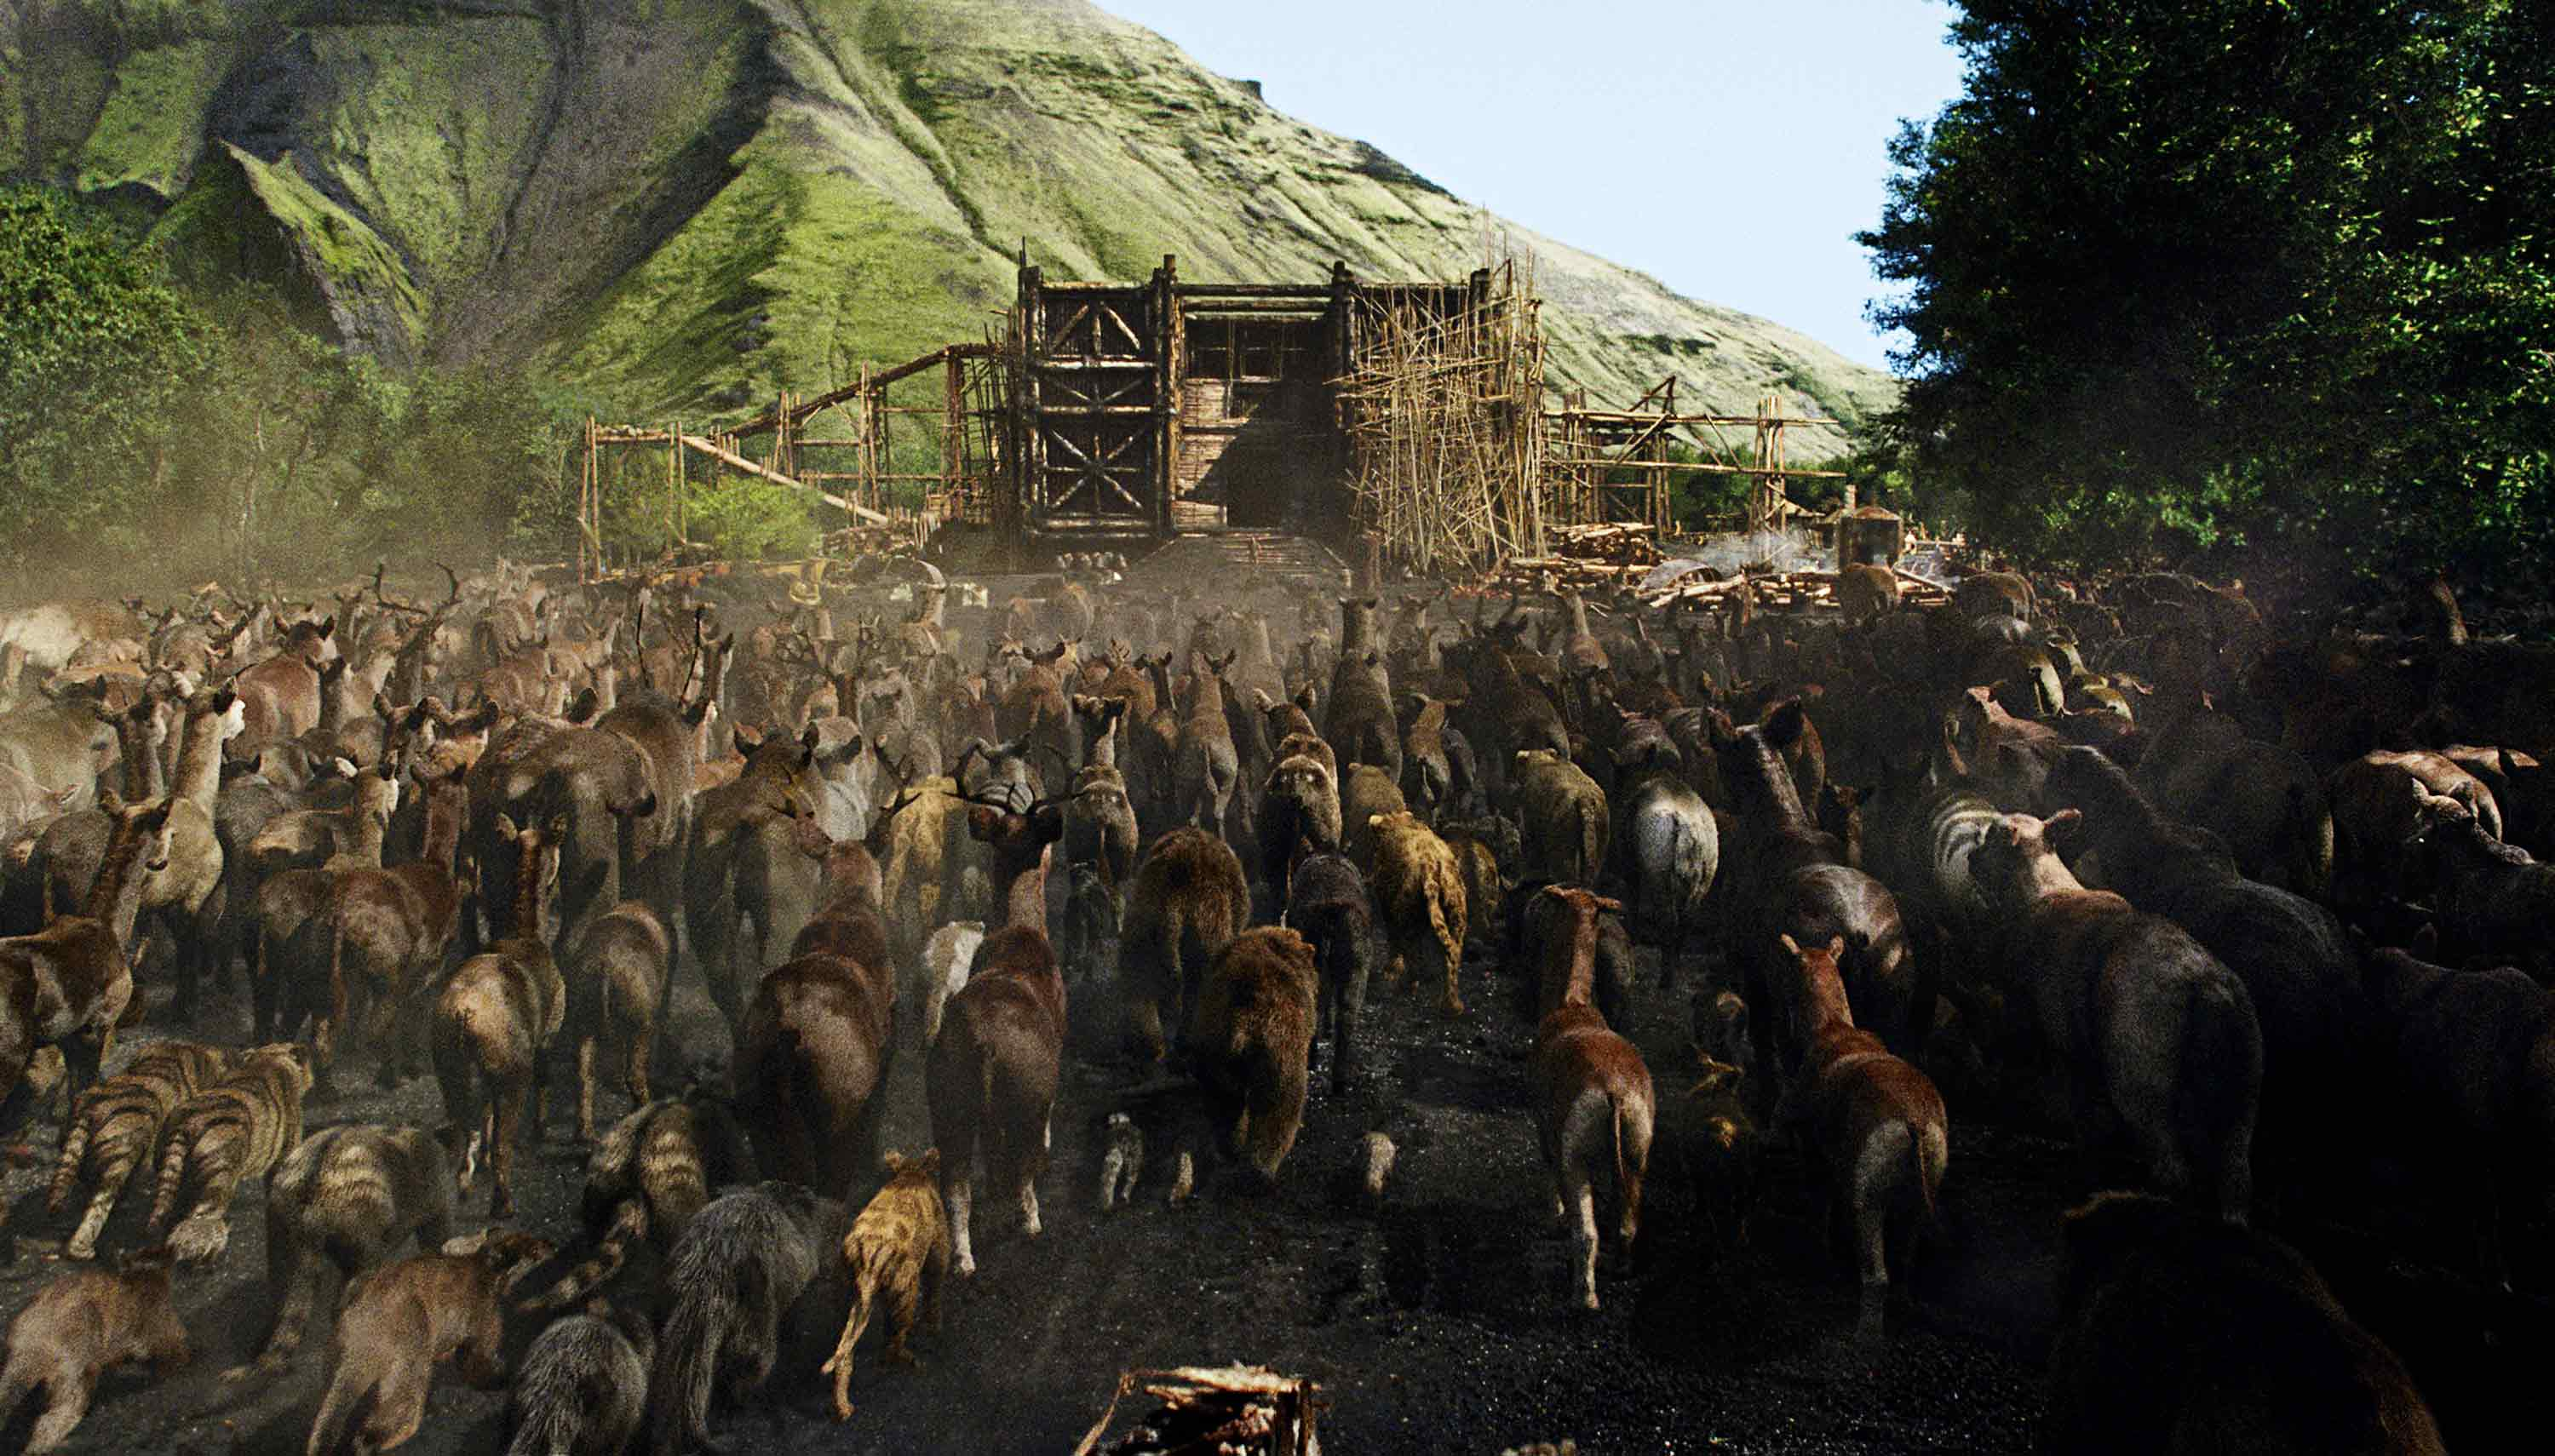 Two by two Aronofsky used digital animals instead of live ones to make Noah